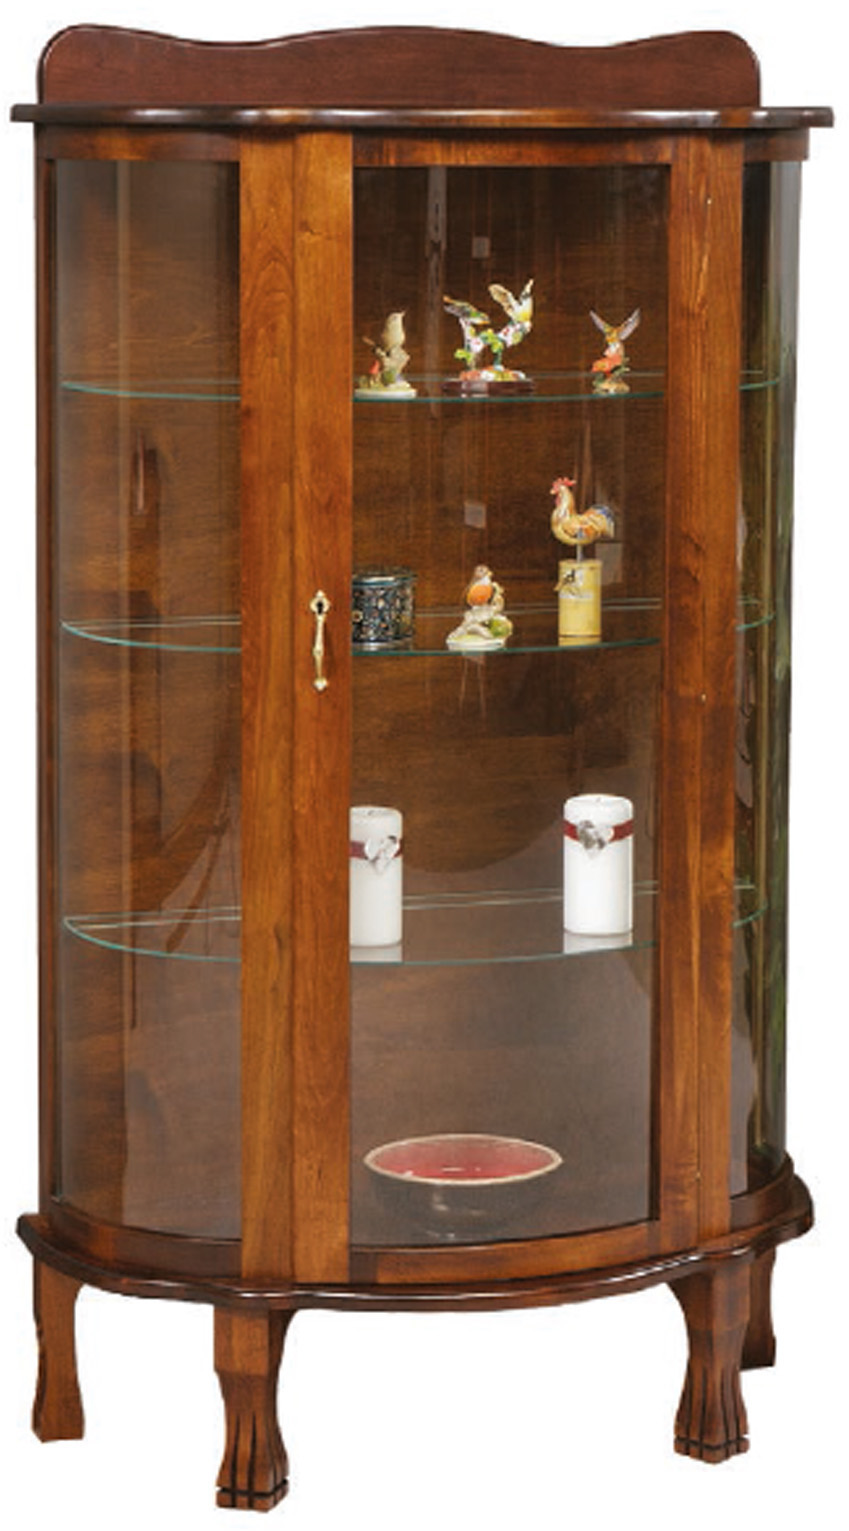 Amish Curio Cabinet. Wood / Stain